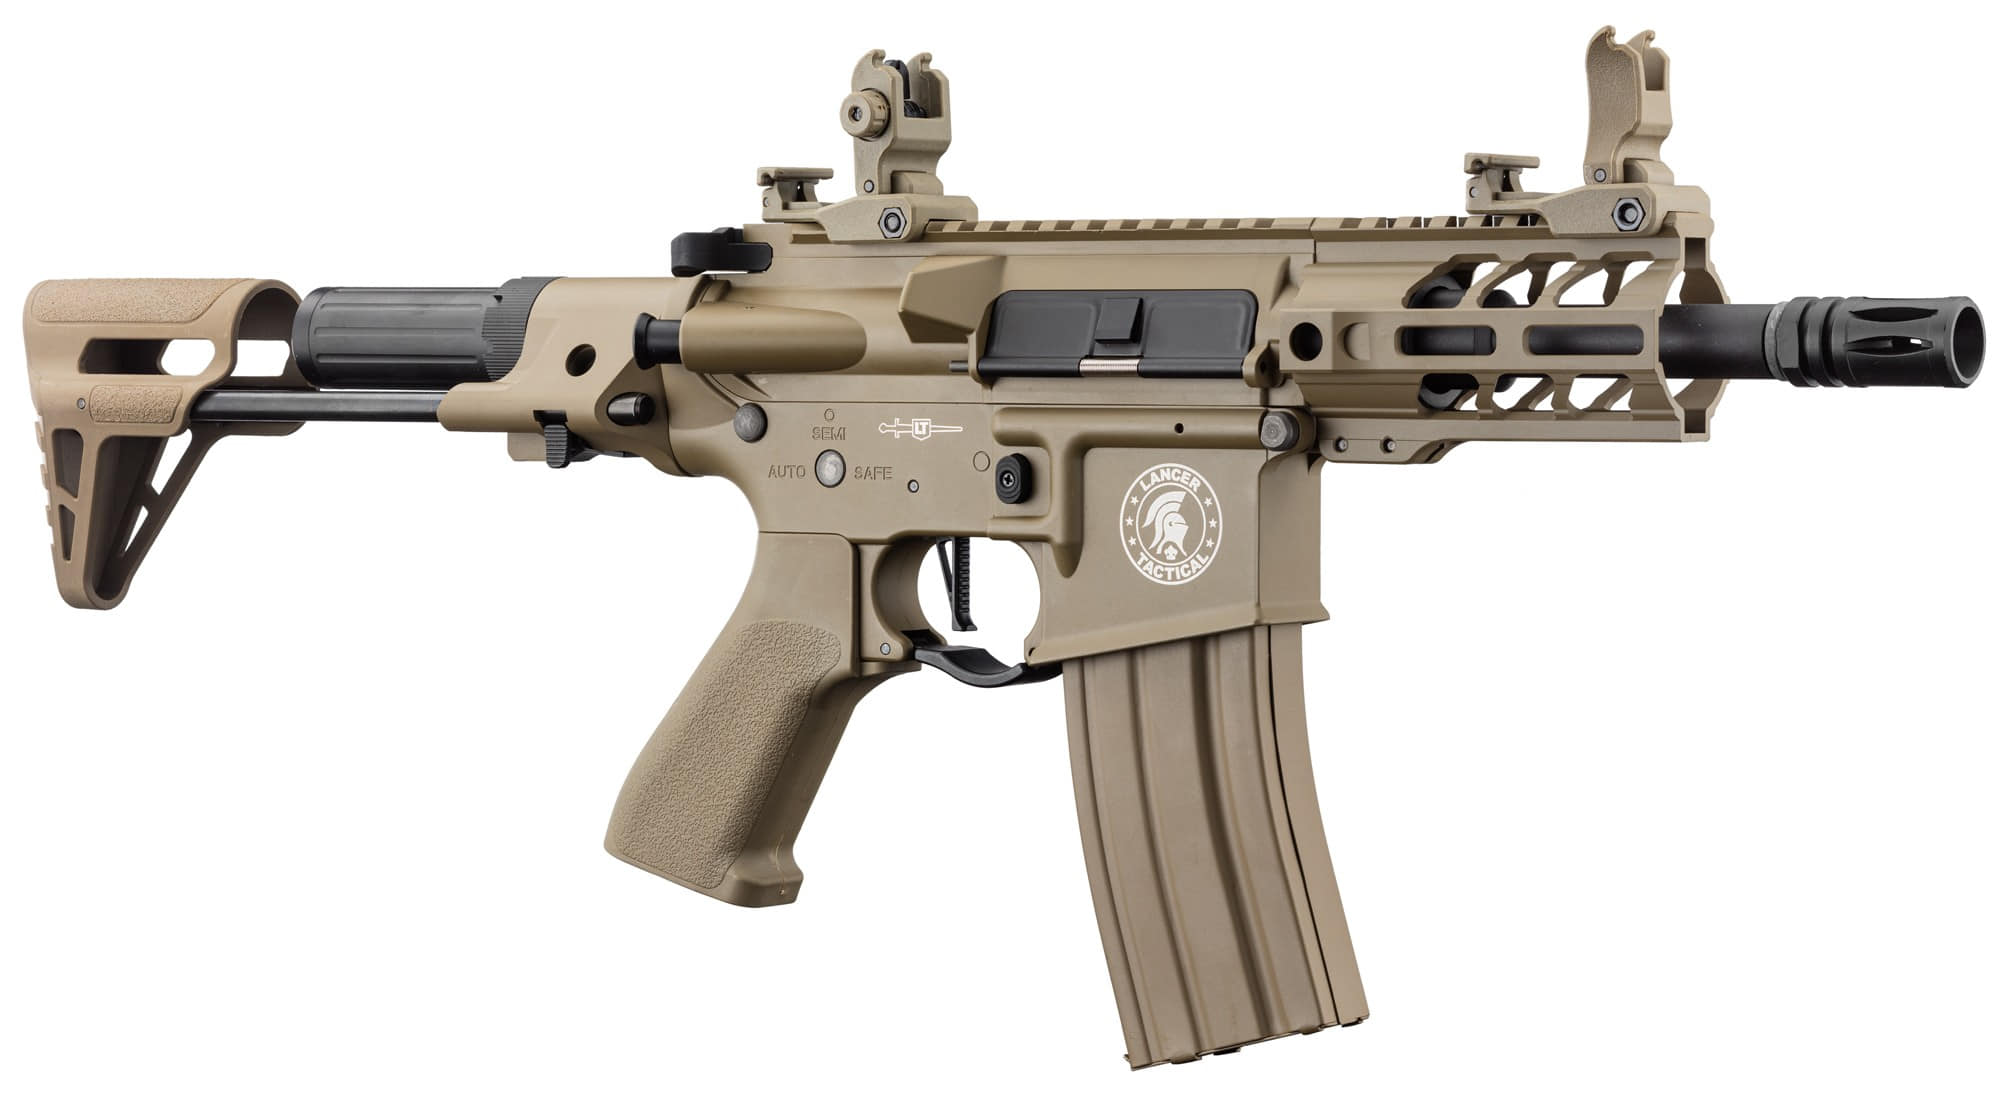 LK9077-3 Réplique AEG LT-34 Proline GEN2 Enforcer Battle Hawk PDW 4' tan - CLK9000